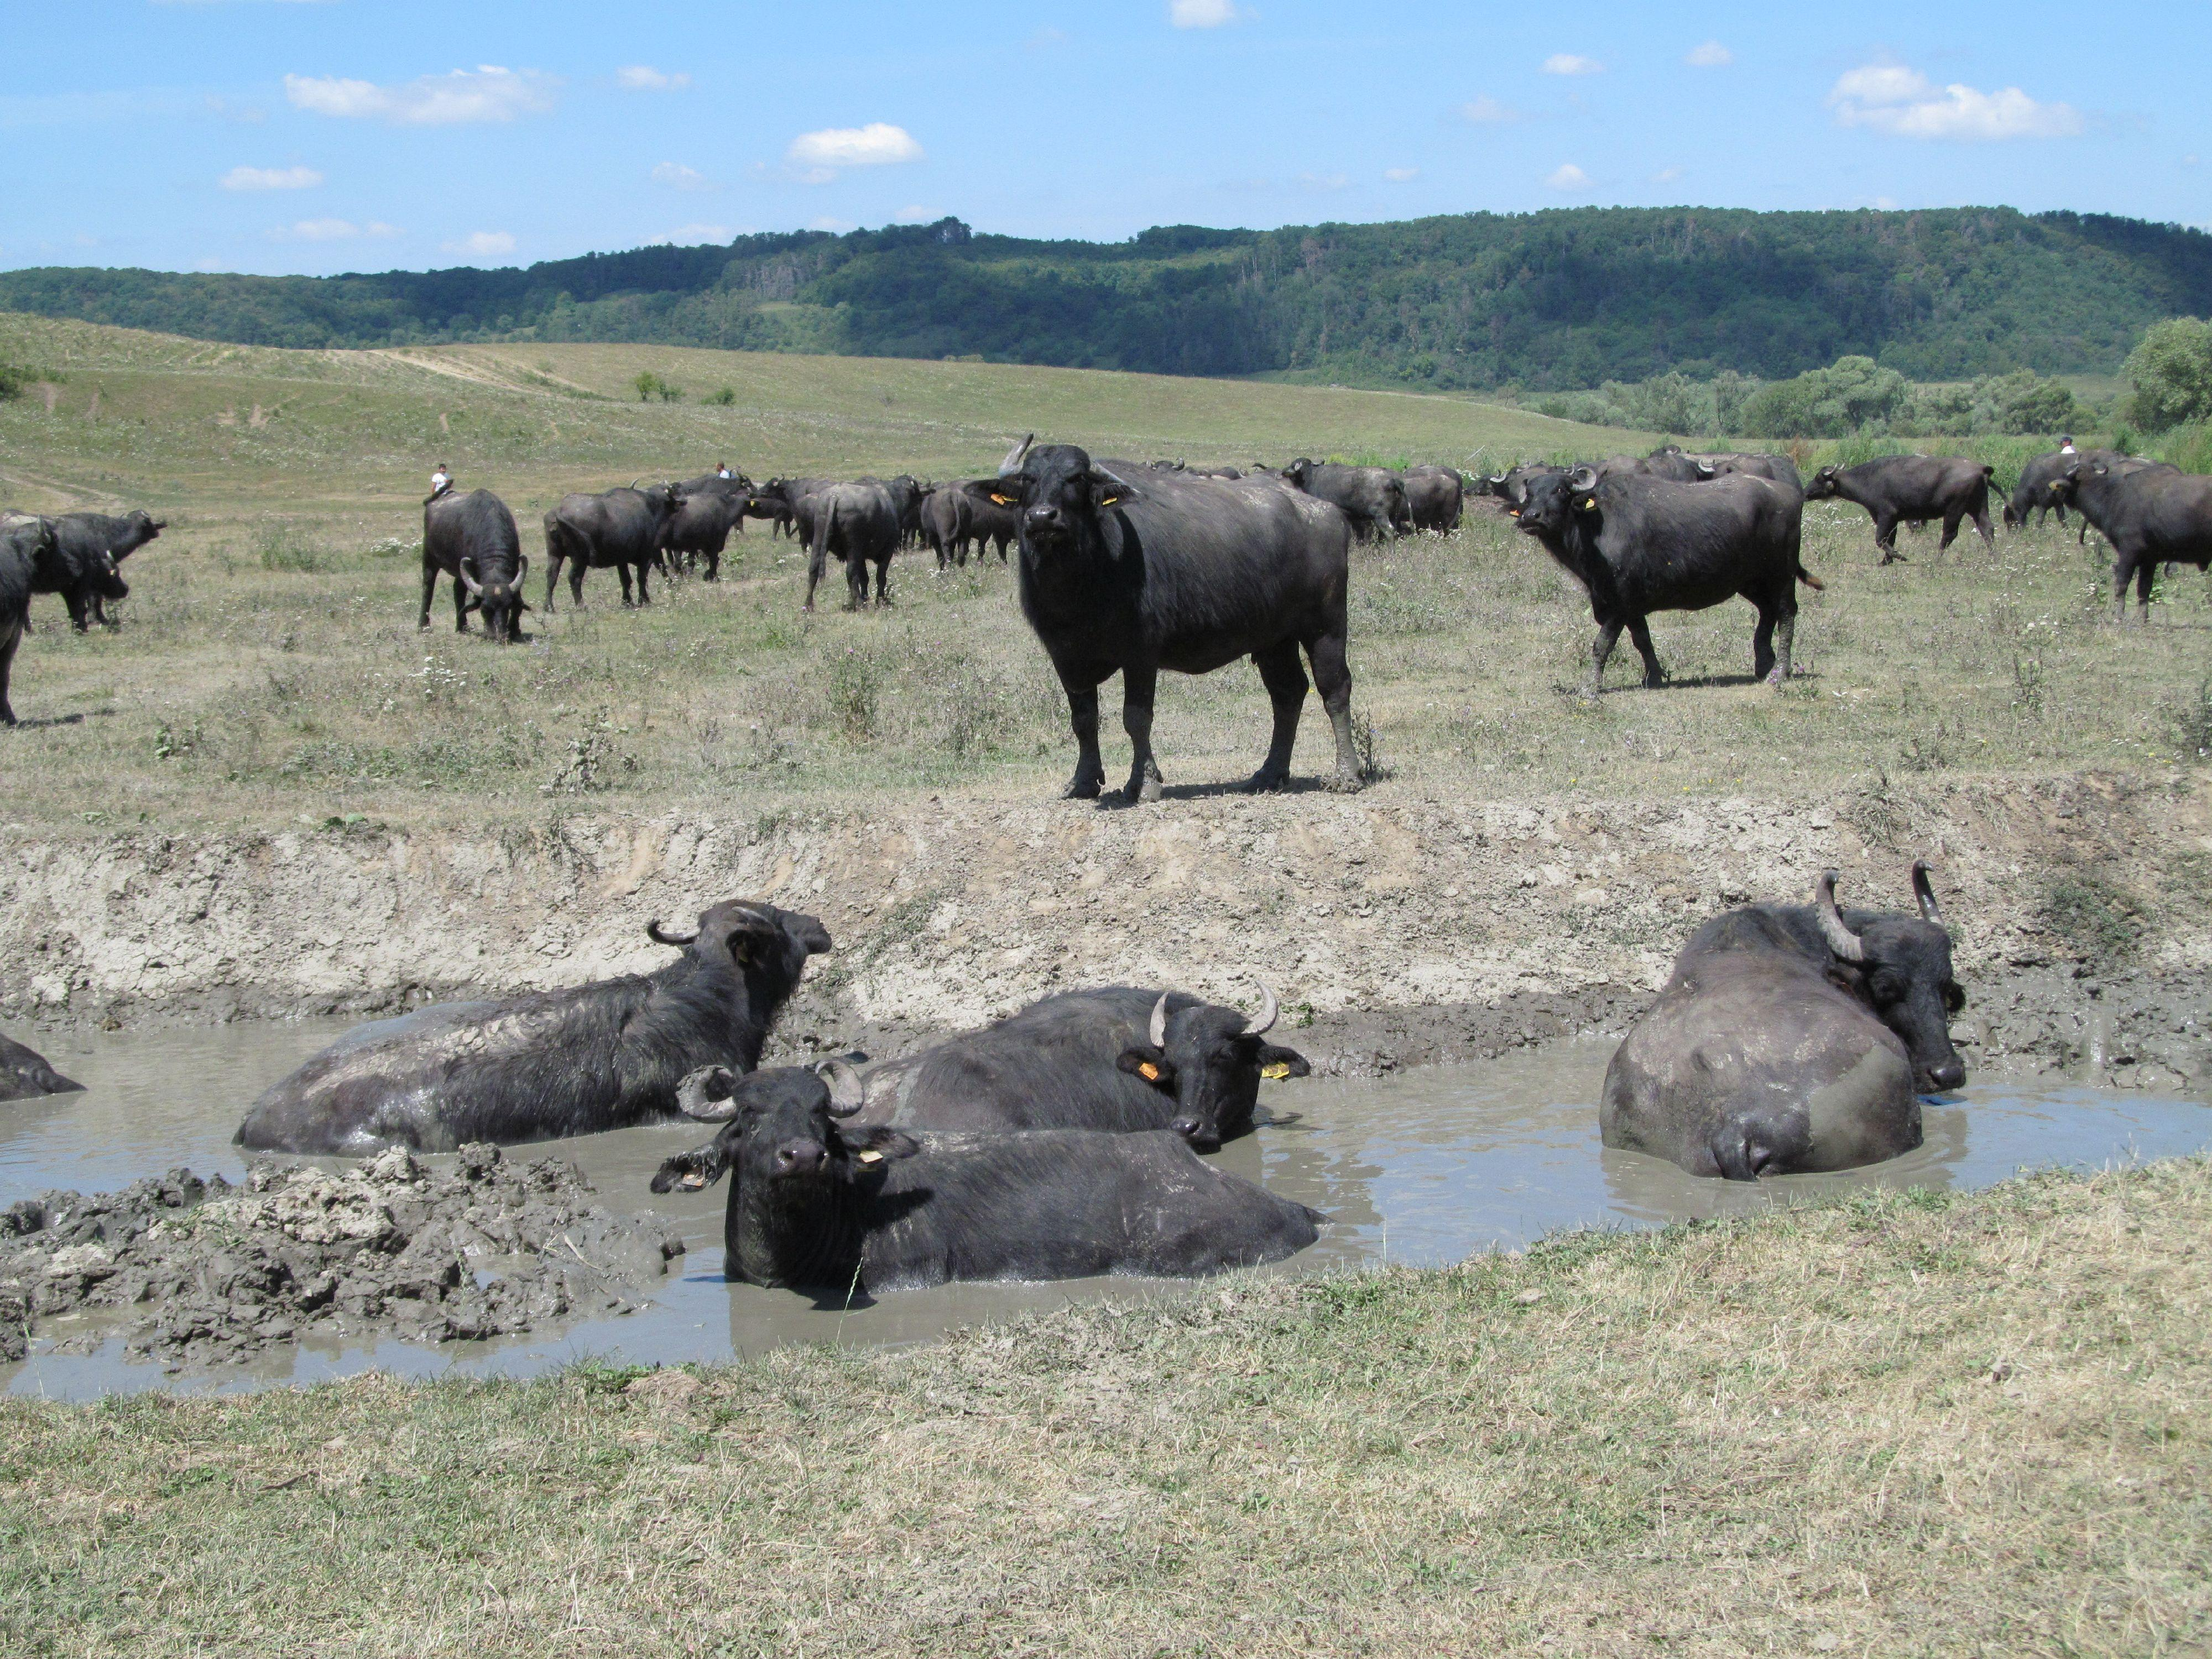 Buffalo need space to roam and available to water